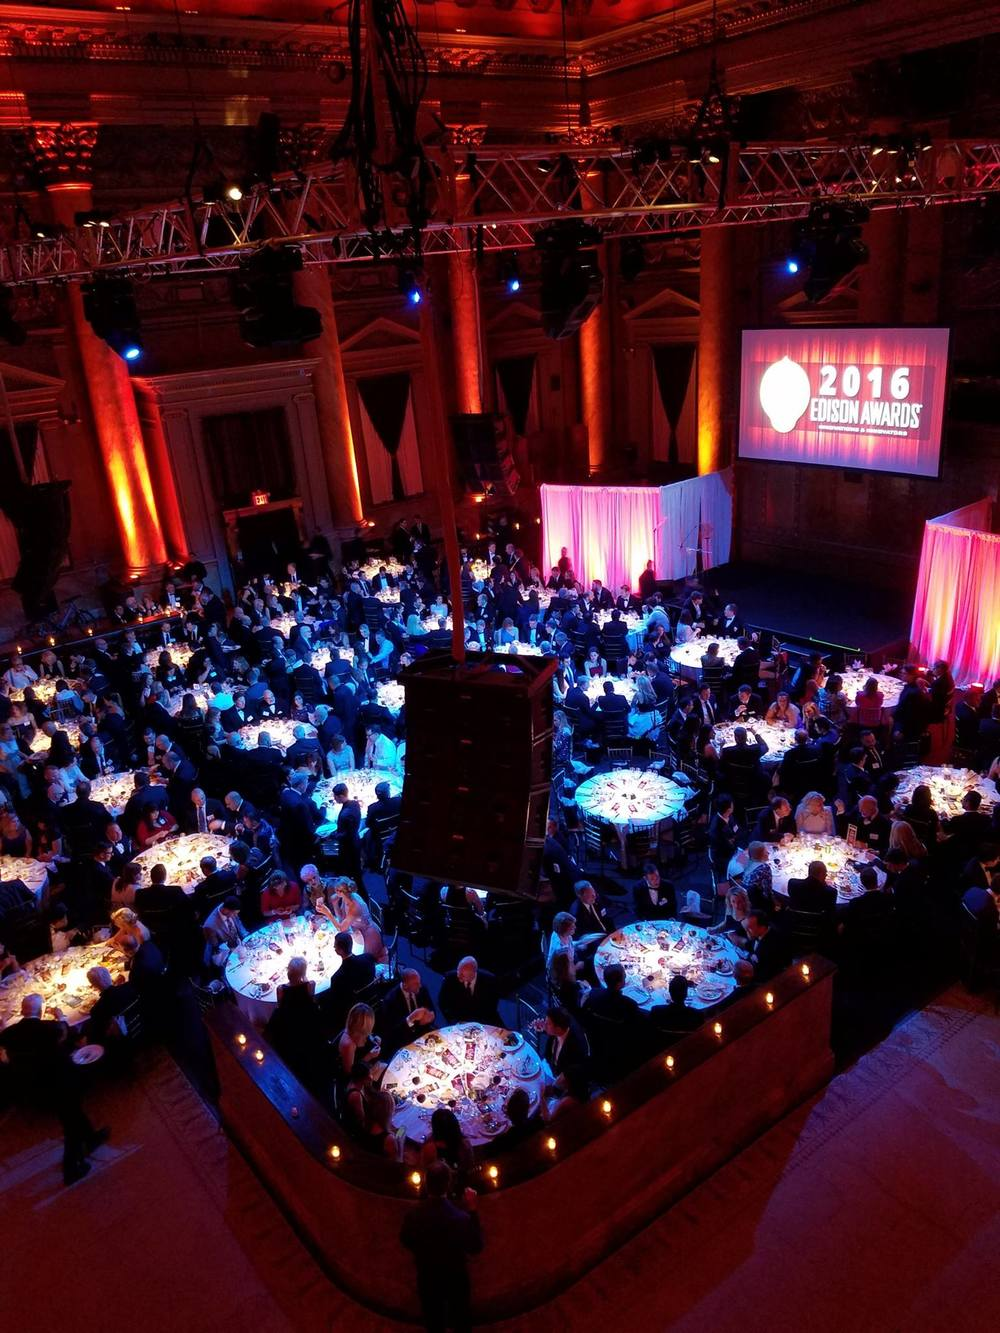 2016 Edison Awards Gala Arial View